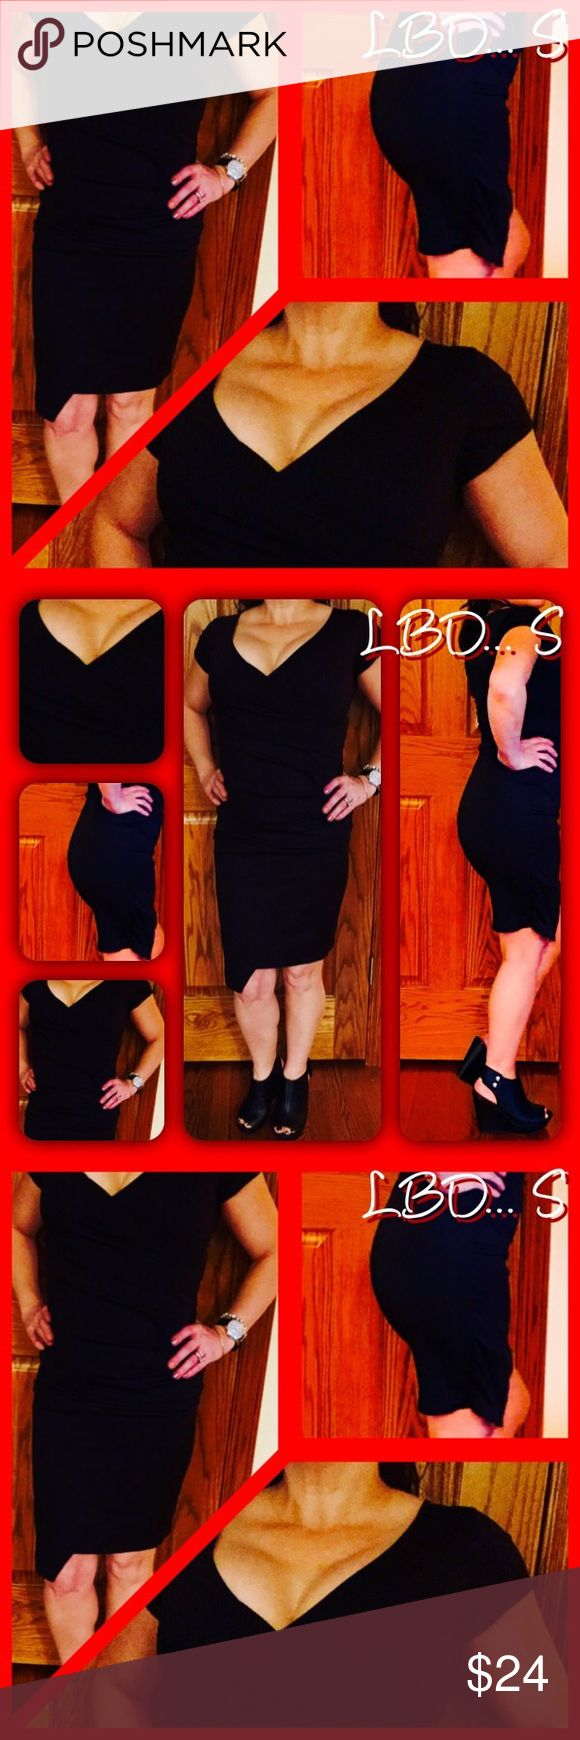 Simple LBD. Great, but I need 2 let go of some :( Beautiful Simple, Sexy LBD, need to make room for all My POSHING I literally can not fit one more huggable hanger in my closet ❣Don't want to become a hoarder. I'm 5'1 and you can see where it hits me in the photos, just above one knee. It's an A symmetrical cut at hemline. Don't forget ....CHELLE GIVES THE BEST FREE GIFTS! According to what I see you like❣🤗❣ HAPPY POSHING❣ its 5:00am I'm falling asleep 😴💤💤💤 Dresses Midi